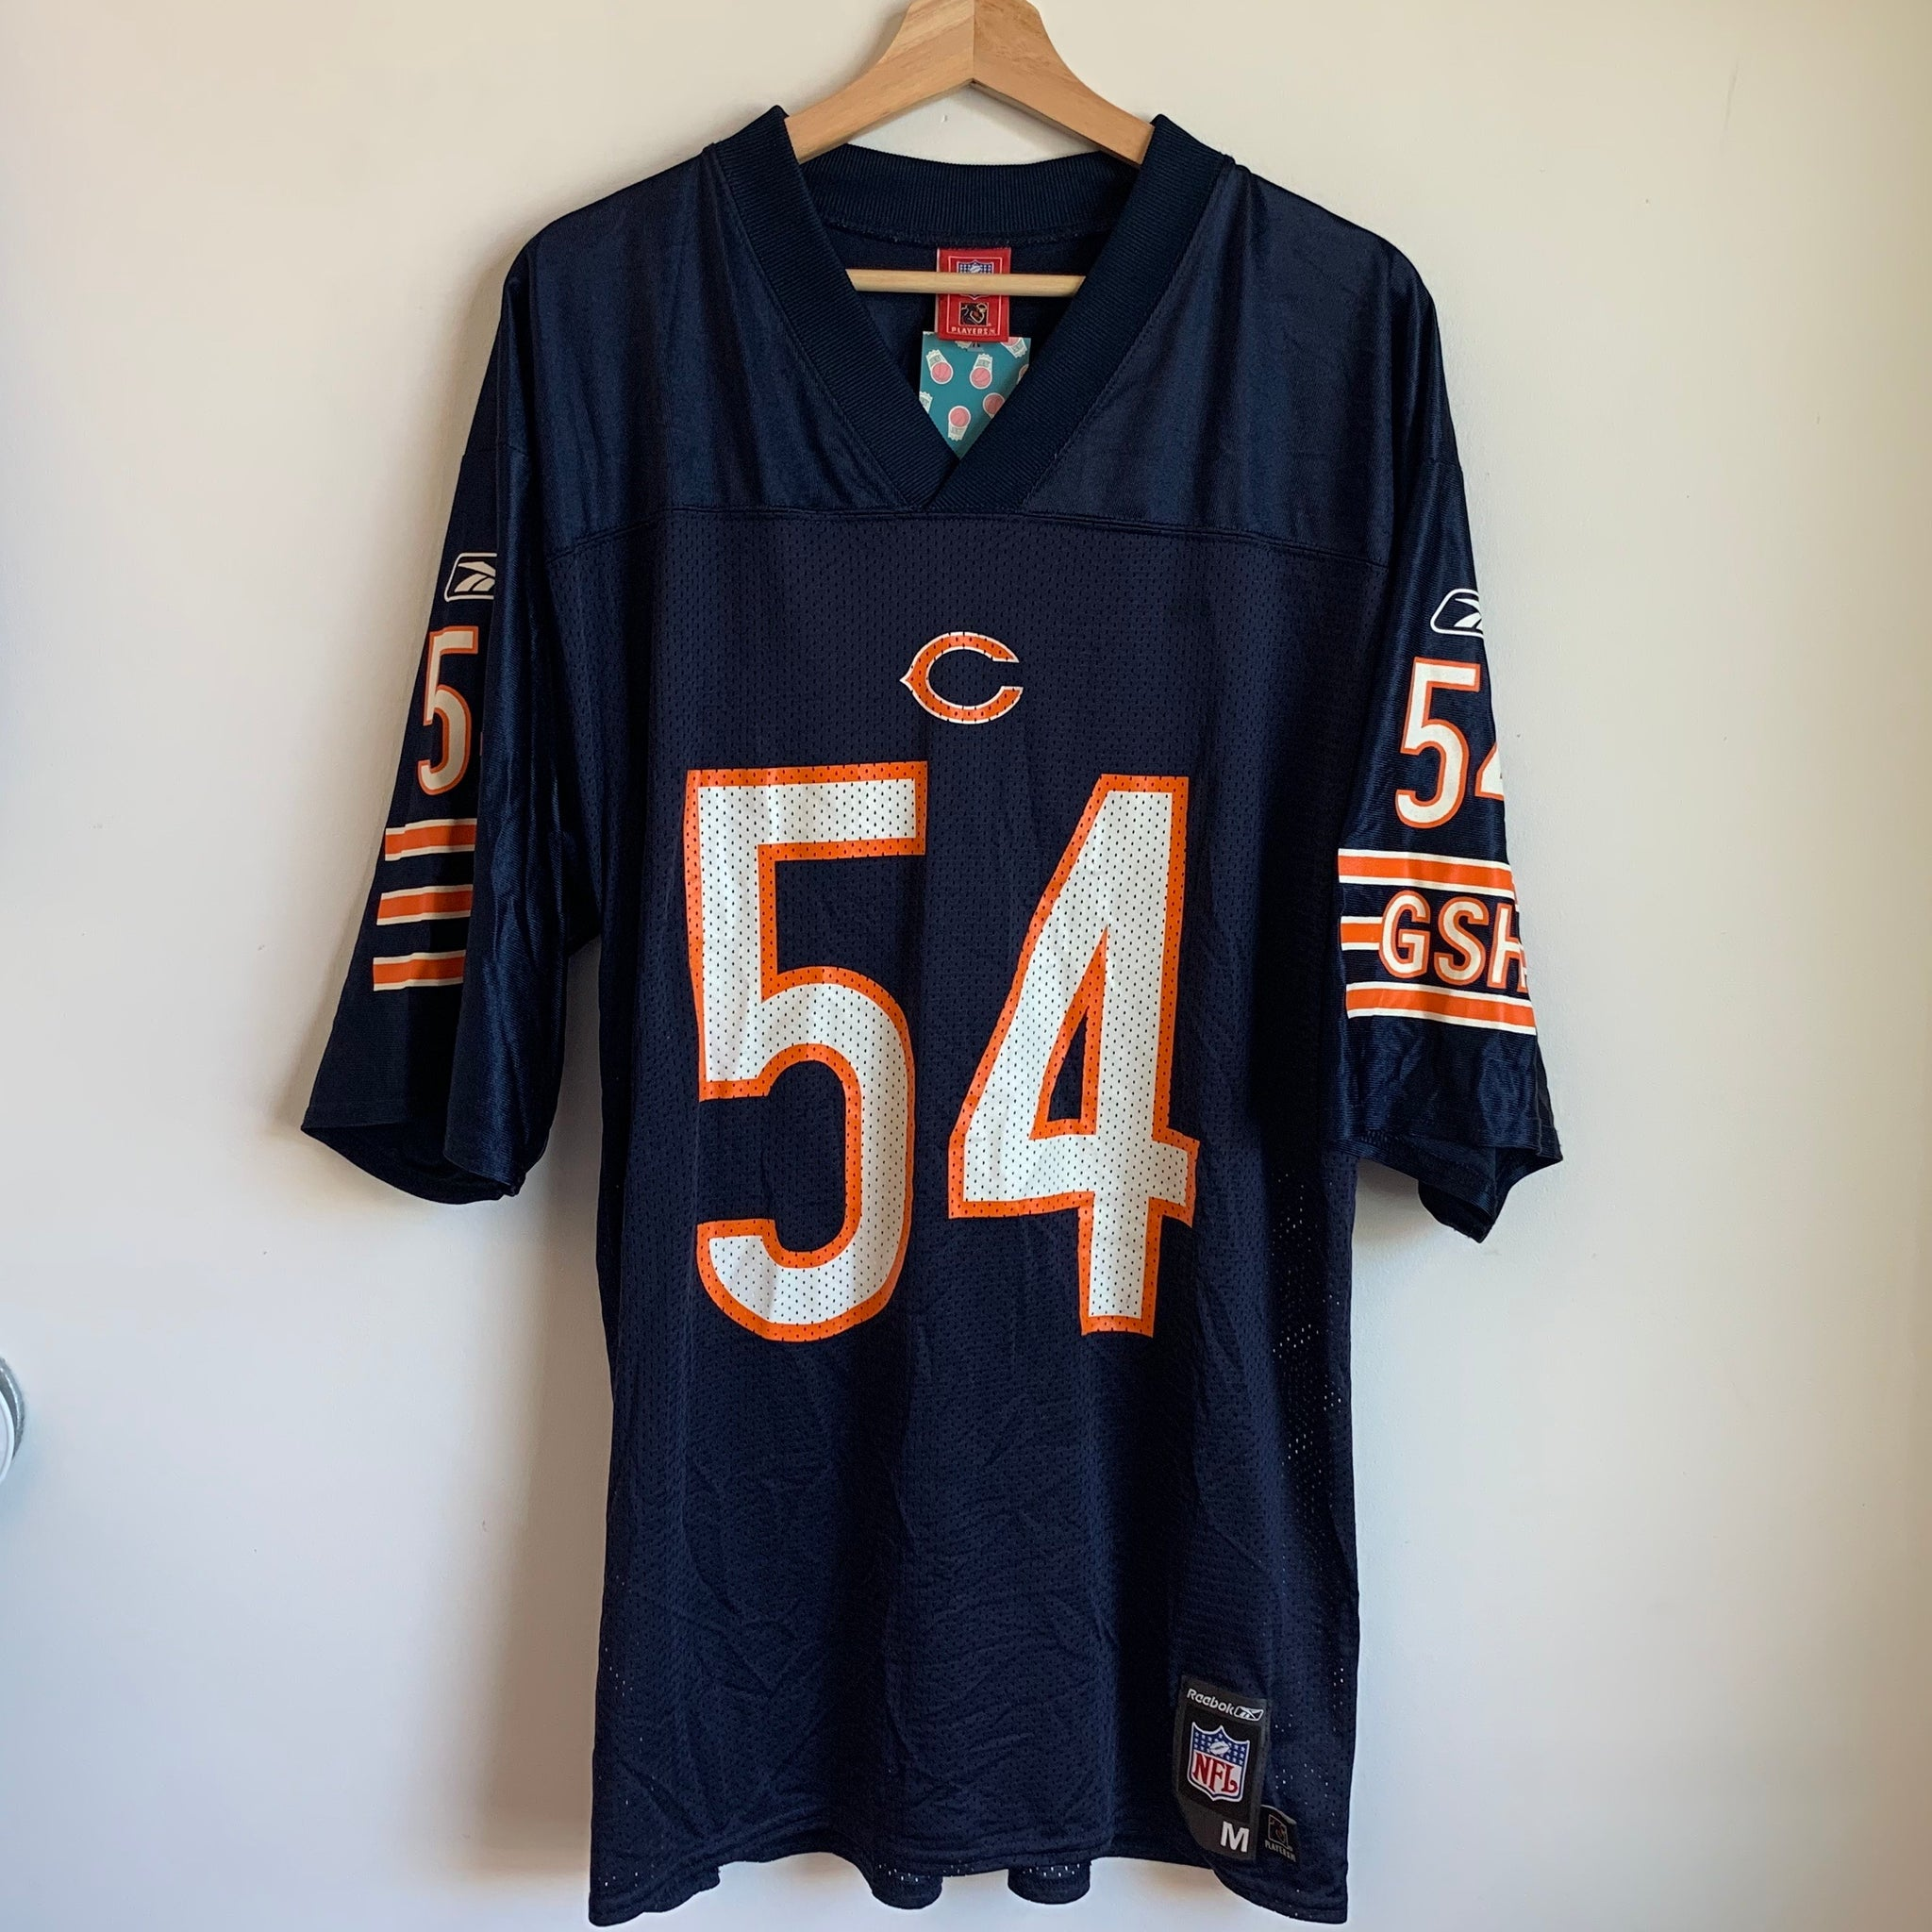 Reebok Brian Urlacher Chicago Bears Football Jersey